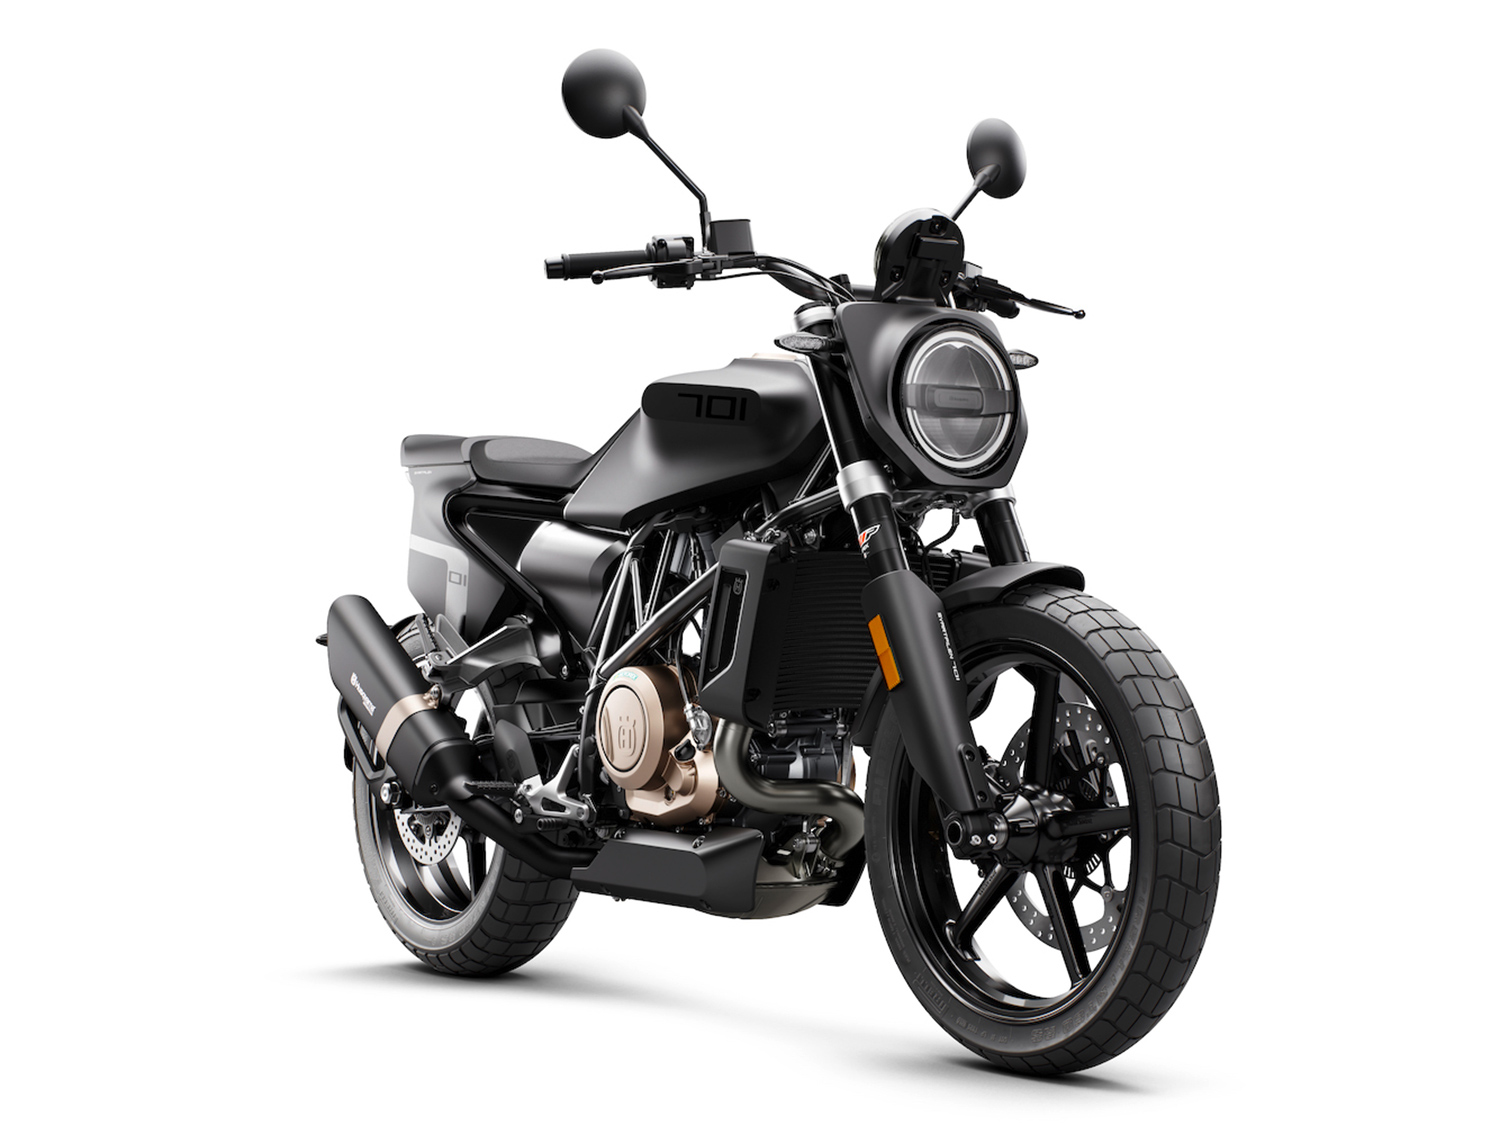 New Motorcycles, New Bike Models | Cycle World